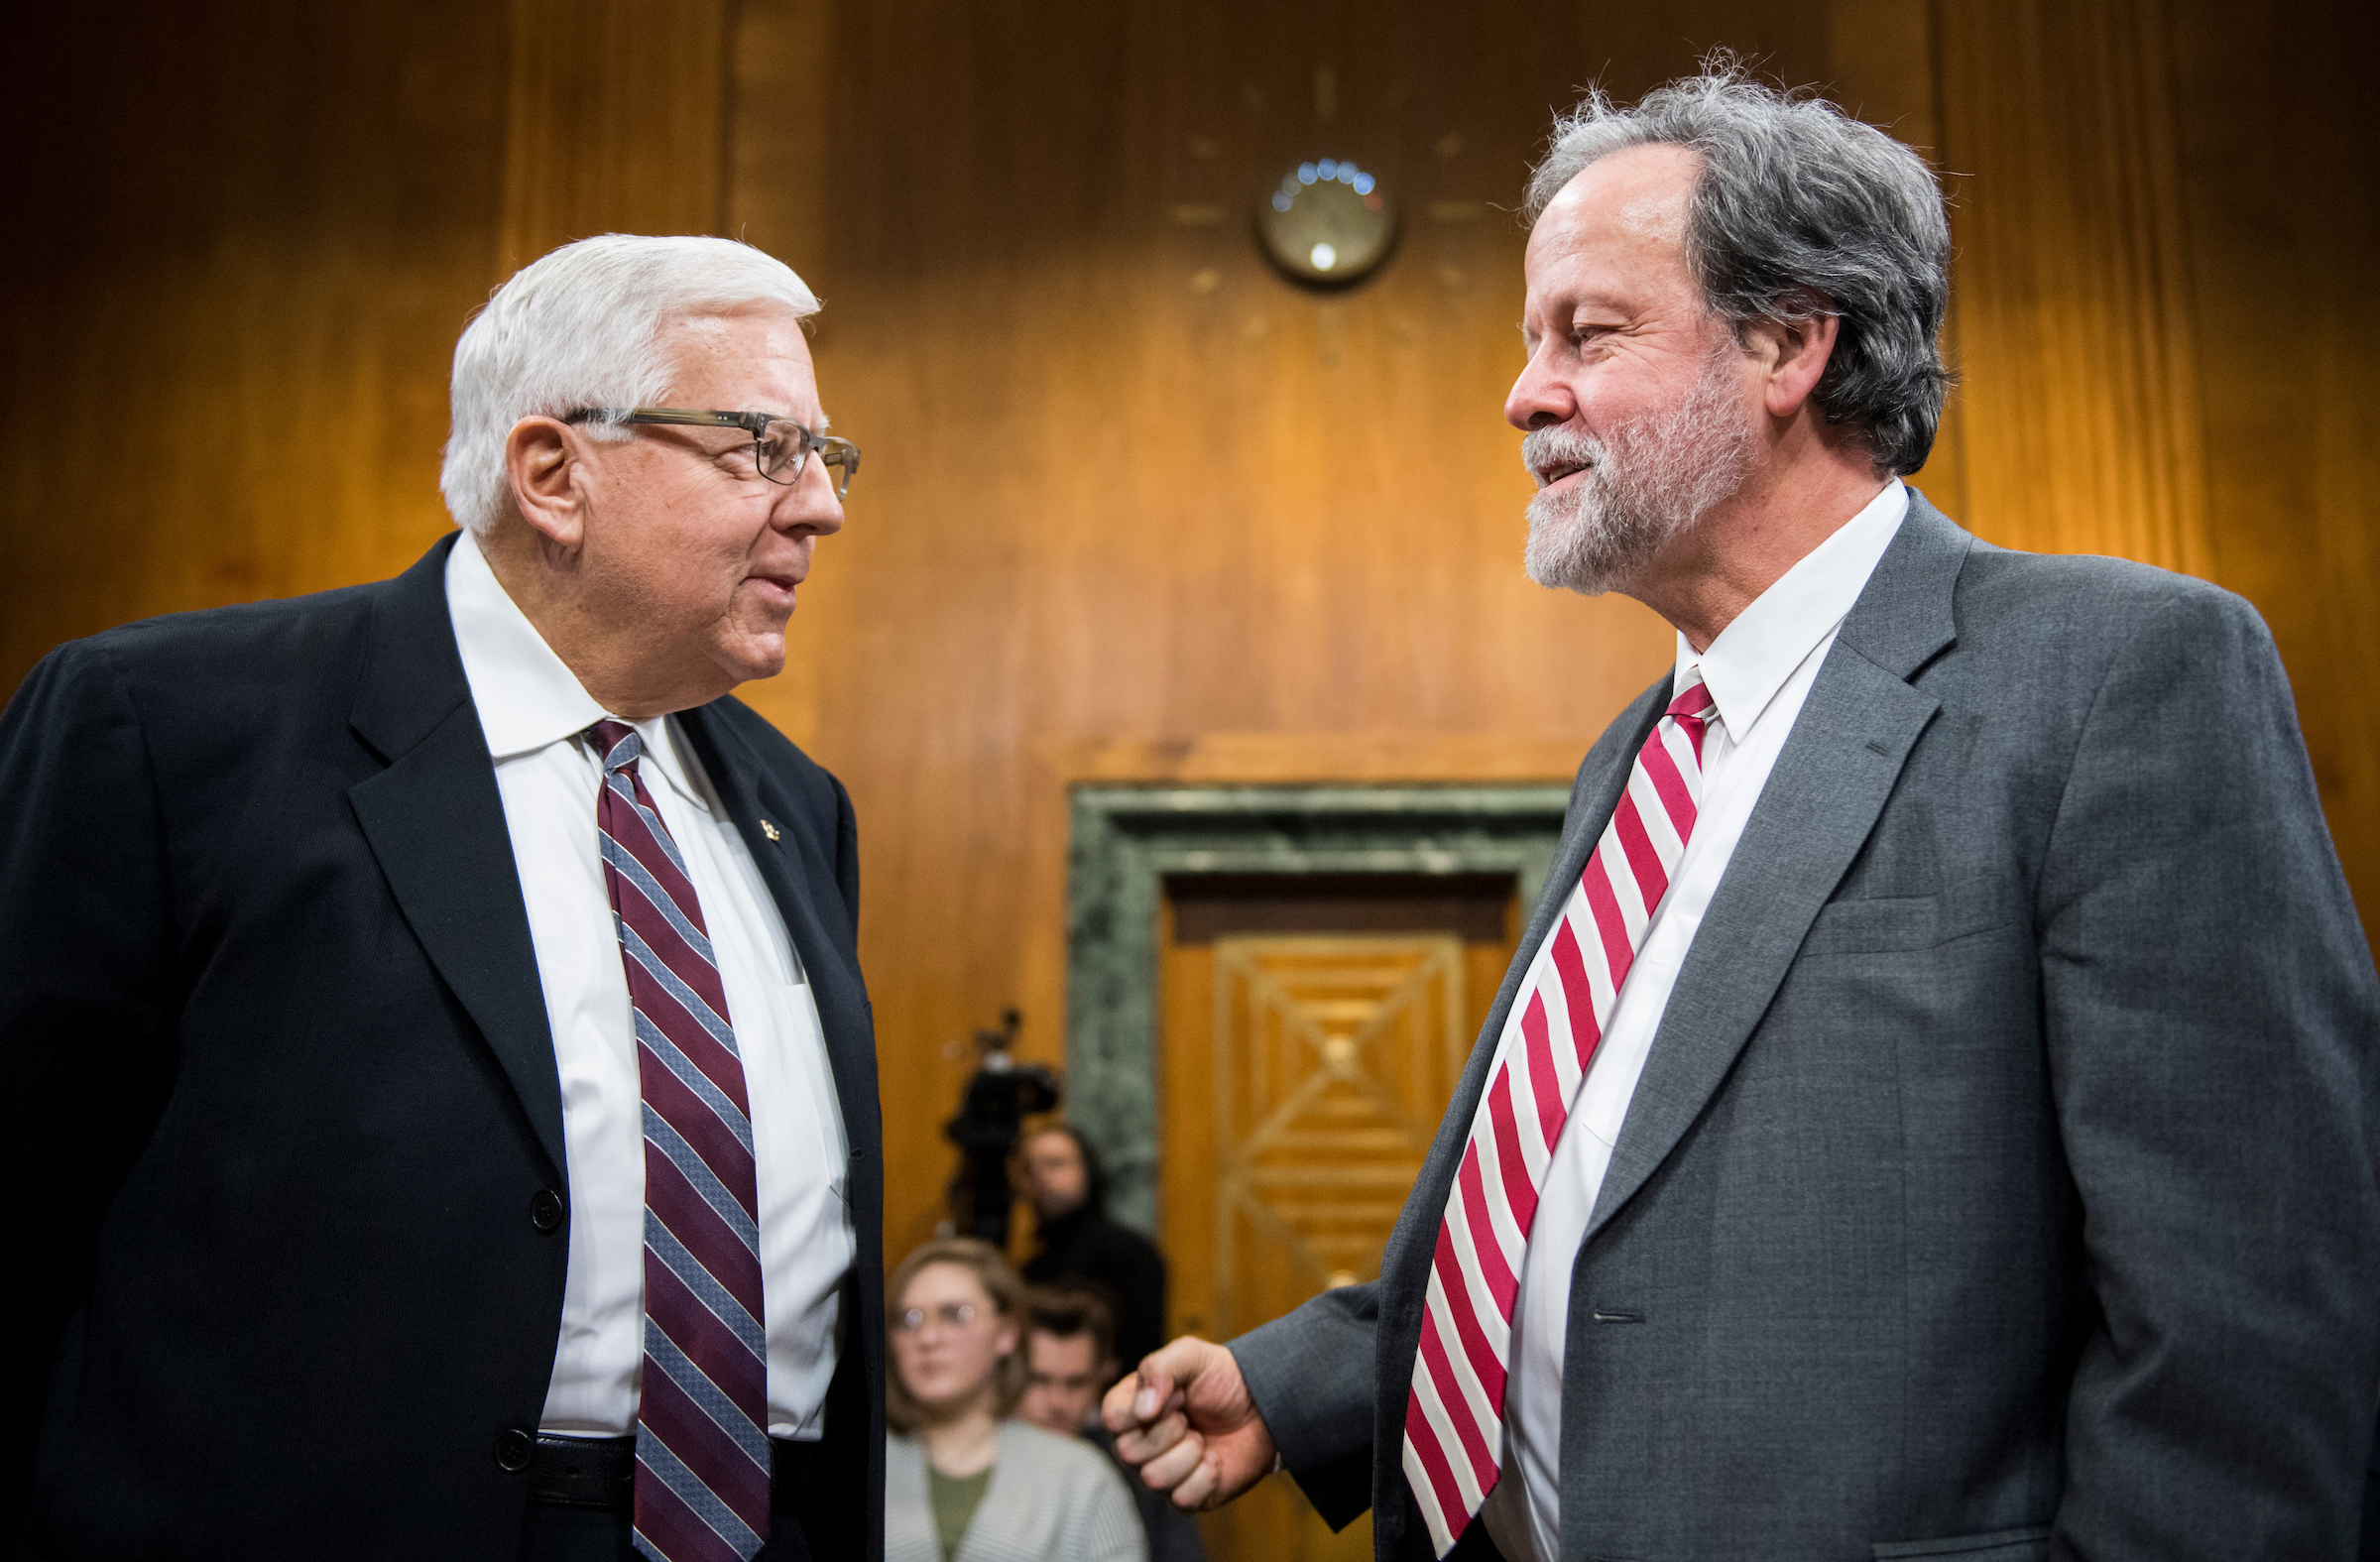 Chairman Mike Enzi, Wyo., left, speaks with CBO Director Keith Hall before the start of the Senate Budget Committee hearing on oversight of the Congressional Budget Office on Wednesday. (Bill Clark/CQ Roll Call)